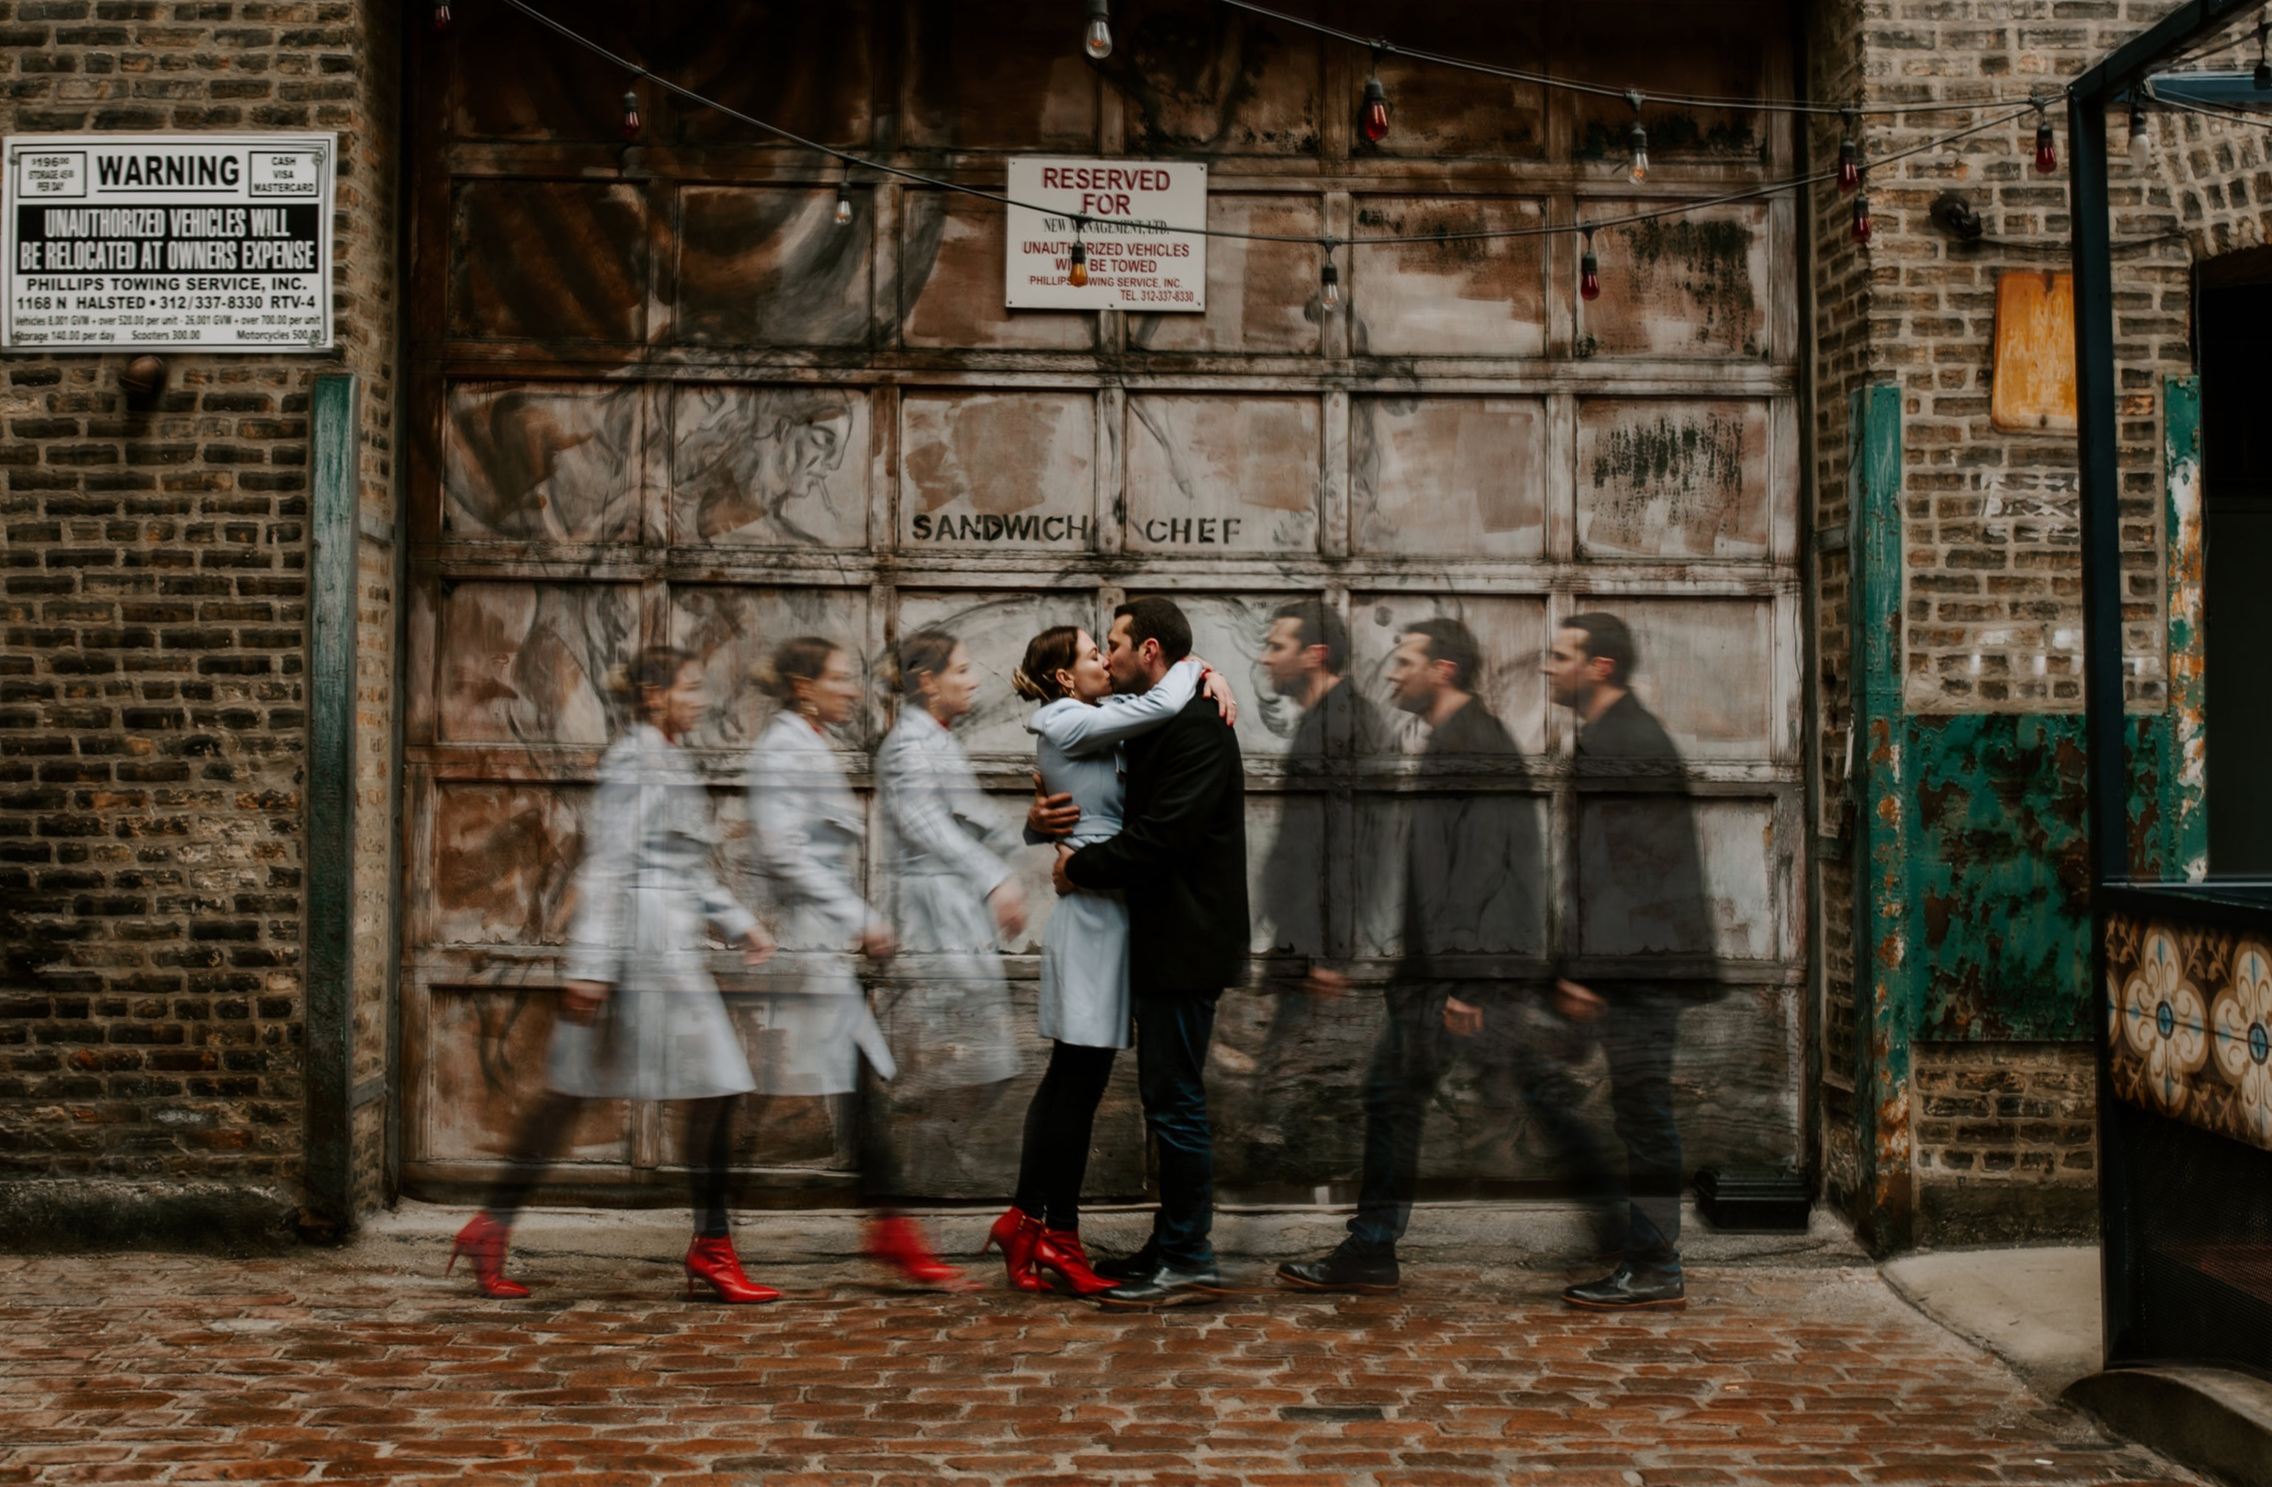 Michael + Lynsey - Fulton Market Engagement Session | Chicago, IL